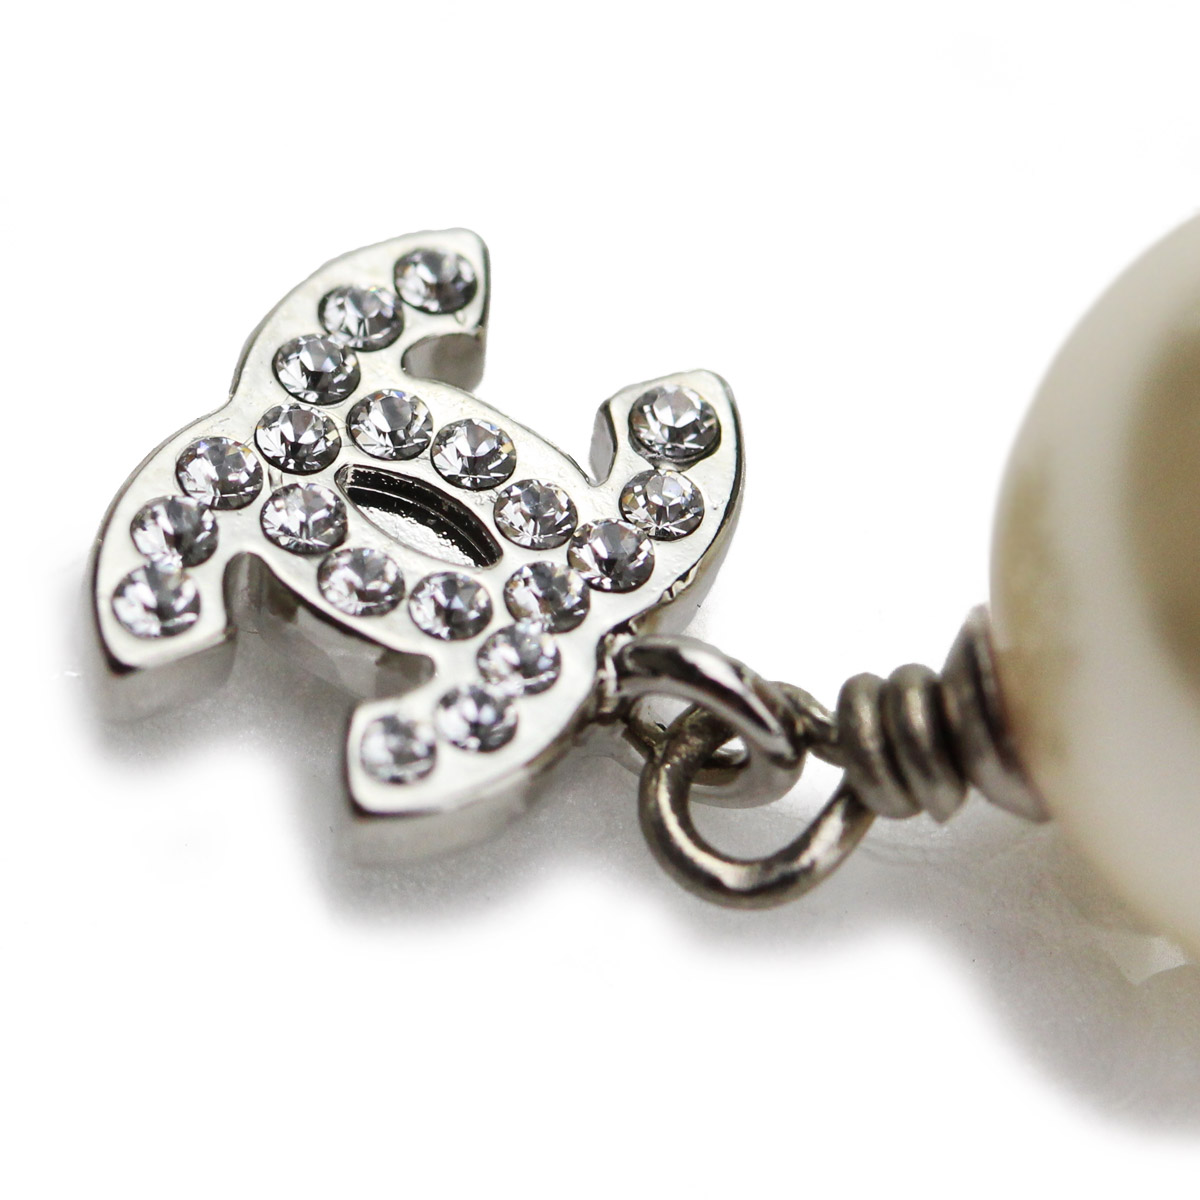 A36138 silver / Pearl Earrings Chanel (CHANEL)( taxfree/send by EMS/authentic/A brand new item )